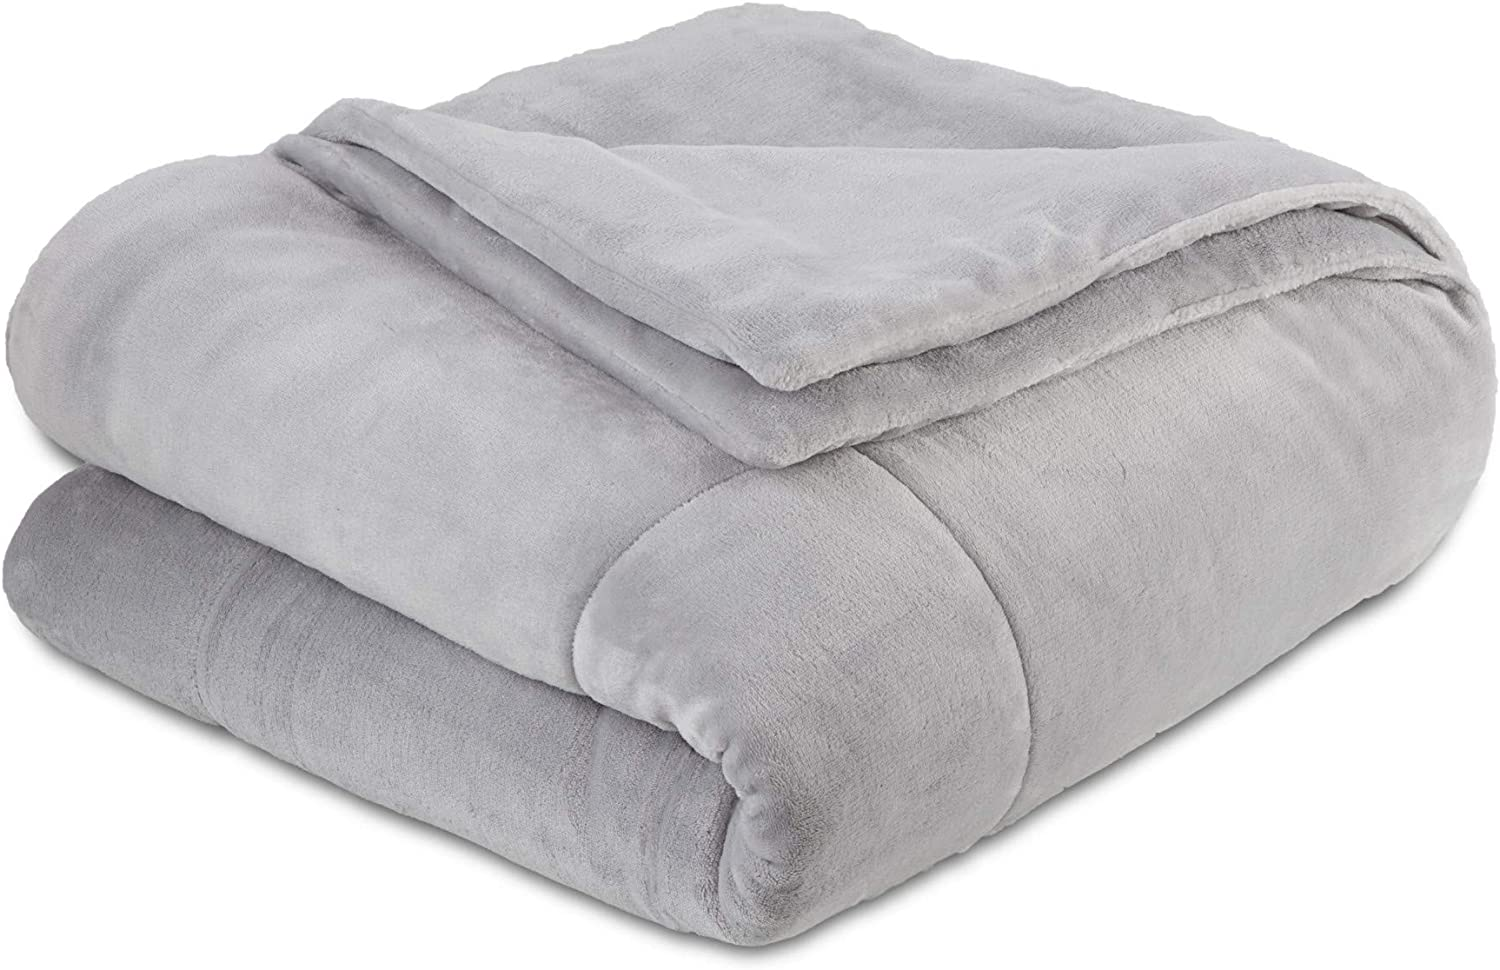 Vellux Plush Luxury Super Soft, Fluffy and Fuzzy Comfortable Lightweight, Warm and Cozy Microfiber Blanket for All Season, King, Light Grey